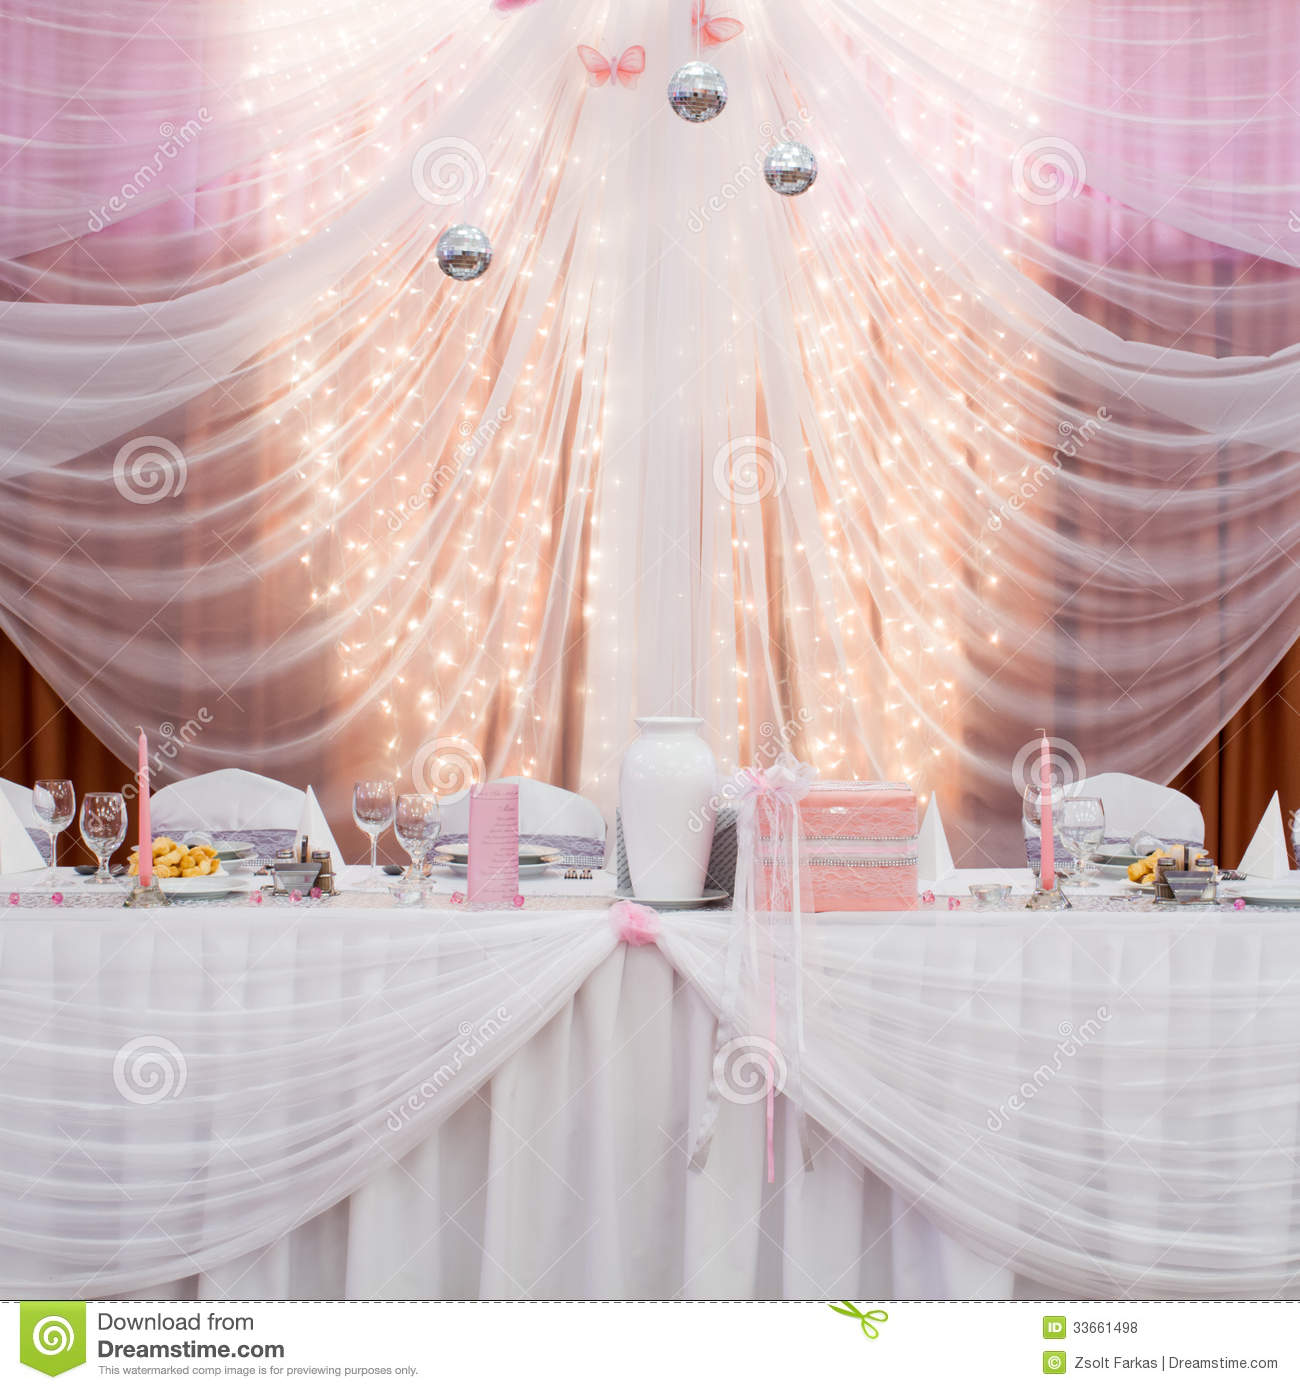 Boy Cub Scout Blue Gold Banquet Ideas also 20969954491524837 as well Black White And Red Wedding Table Settings Settingsred Checkered Tablecloth Background Skirt together with Products besides bridaltablecloths. on round banquet table decorations